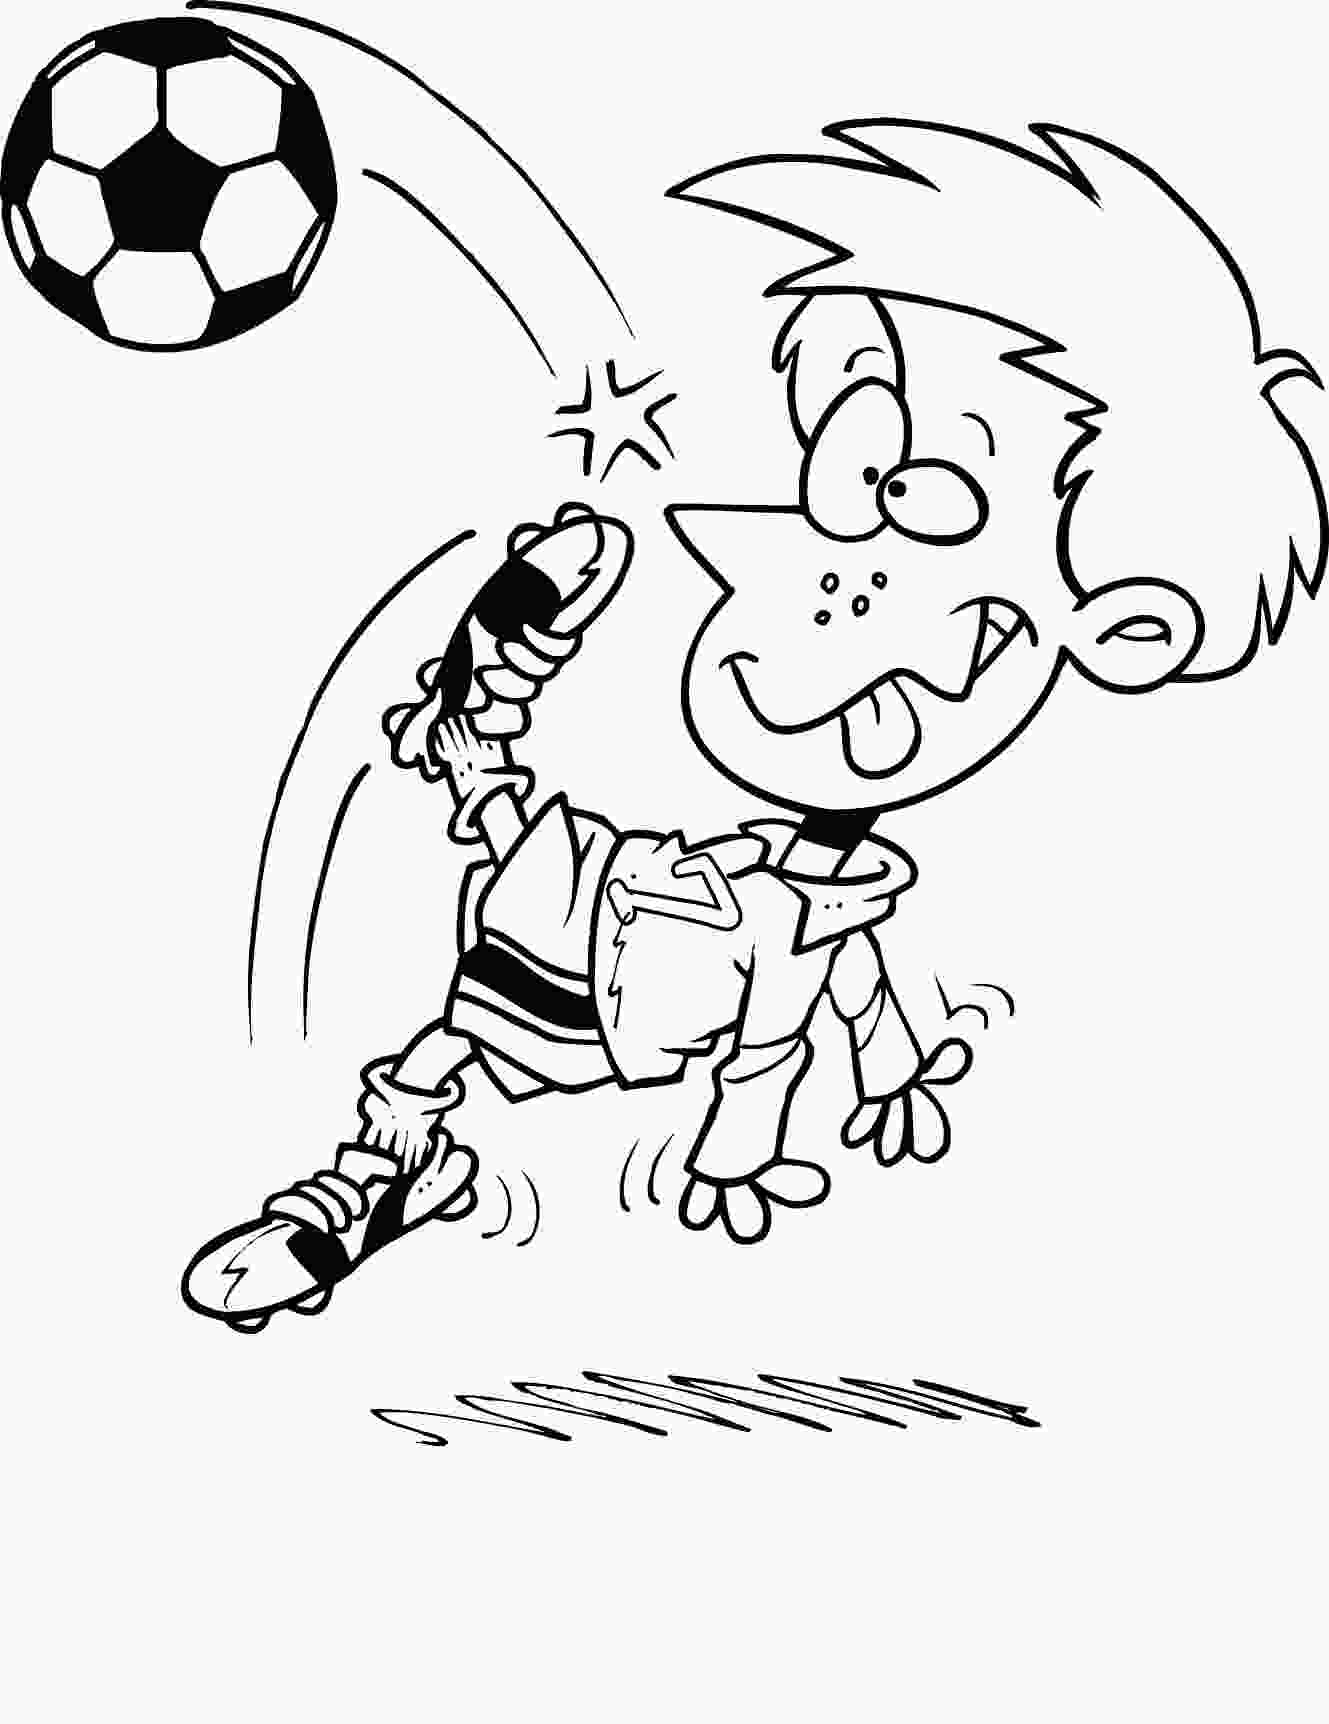 free printable coloring pages for children free printable soccer coloring pages for kids